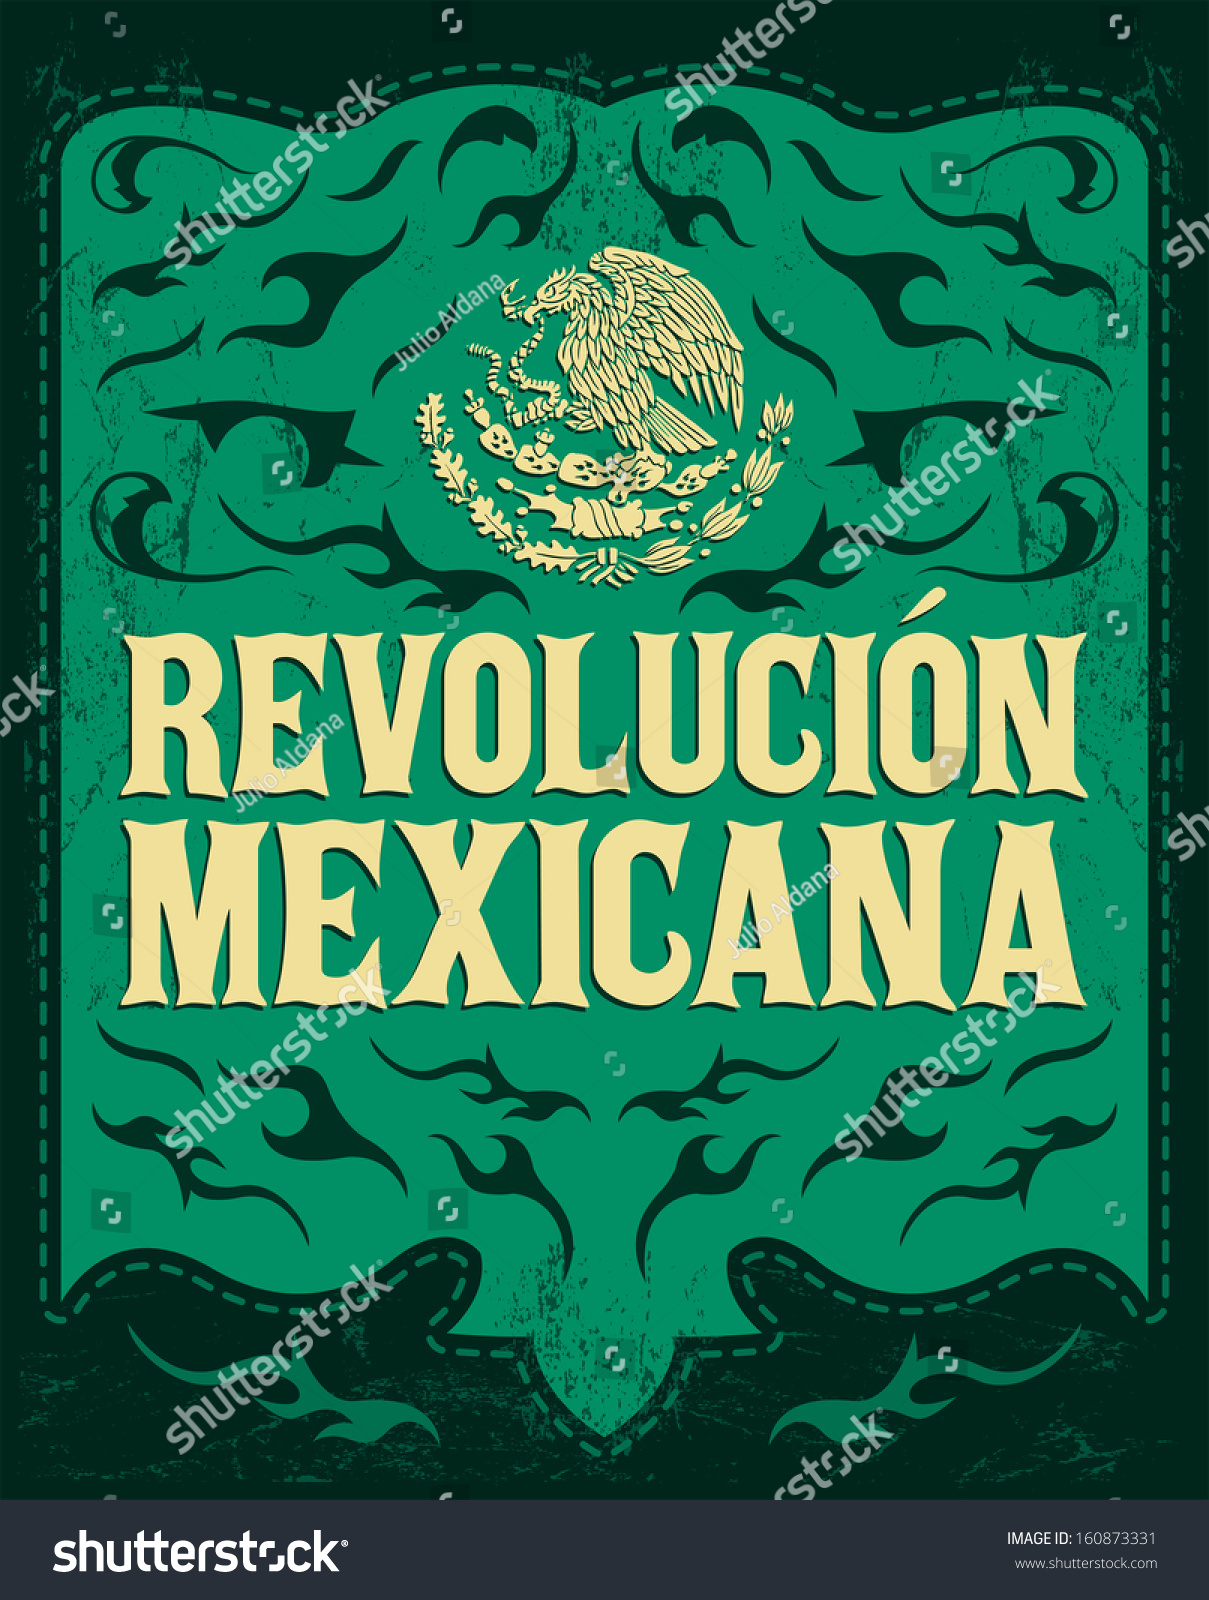 effects of the mexican revolution on The mexican revolution broke out in 1910 when the decades-old rule of president porfirio díaz was challenged by francisco i madero, a reformist writer and politicianwhen díaz refused to allow clean elections, madero's calls for revolution were answered by emiliano zapata in the south, and pascual orozco and pancho villa in the north.